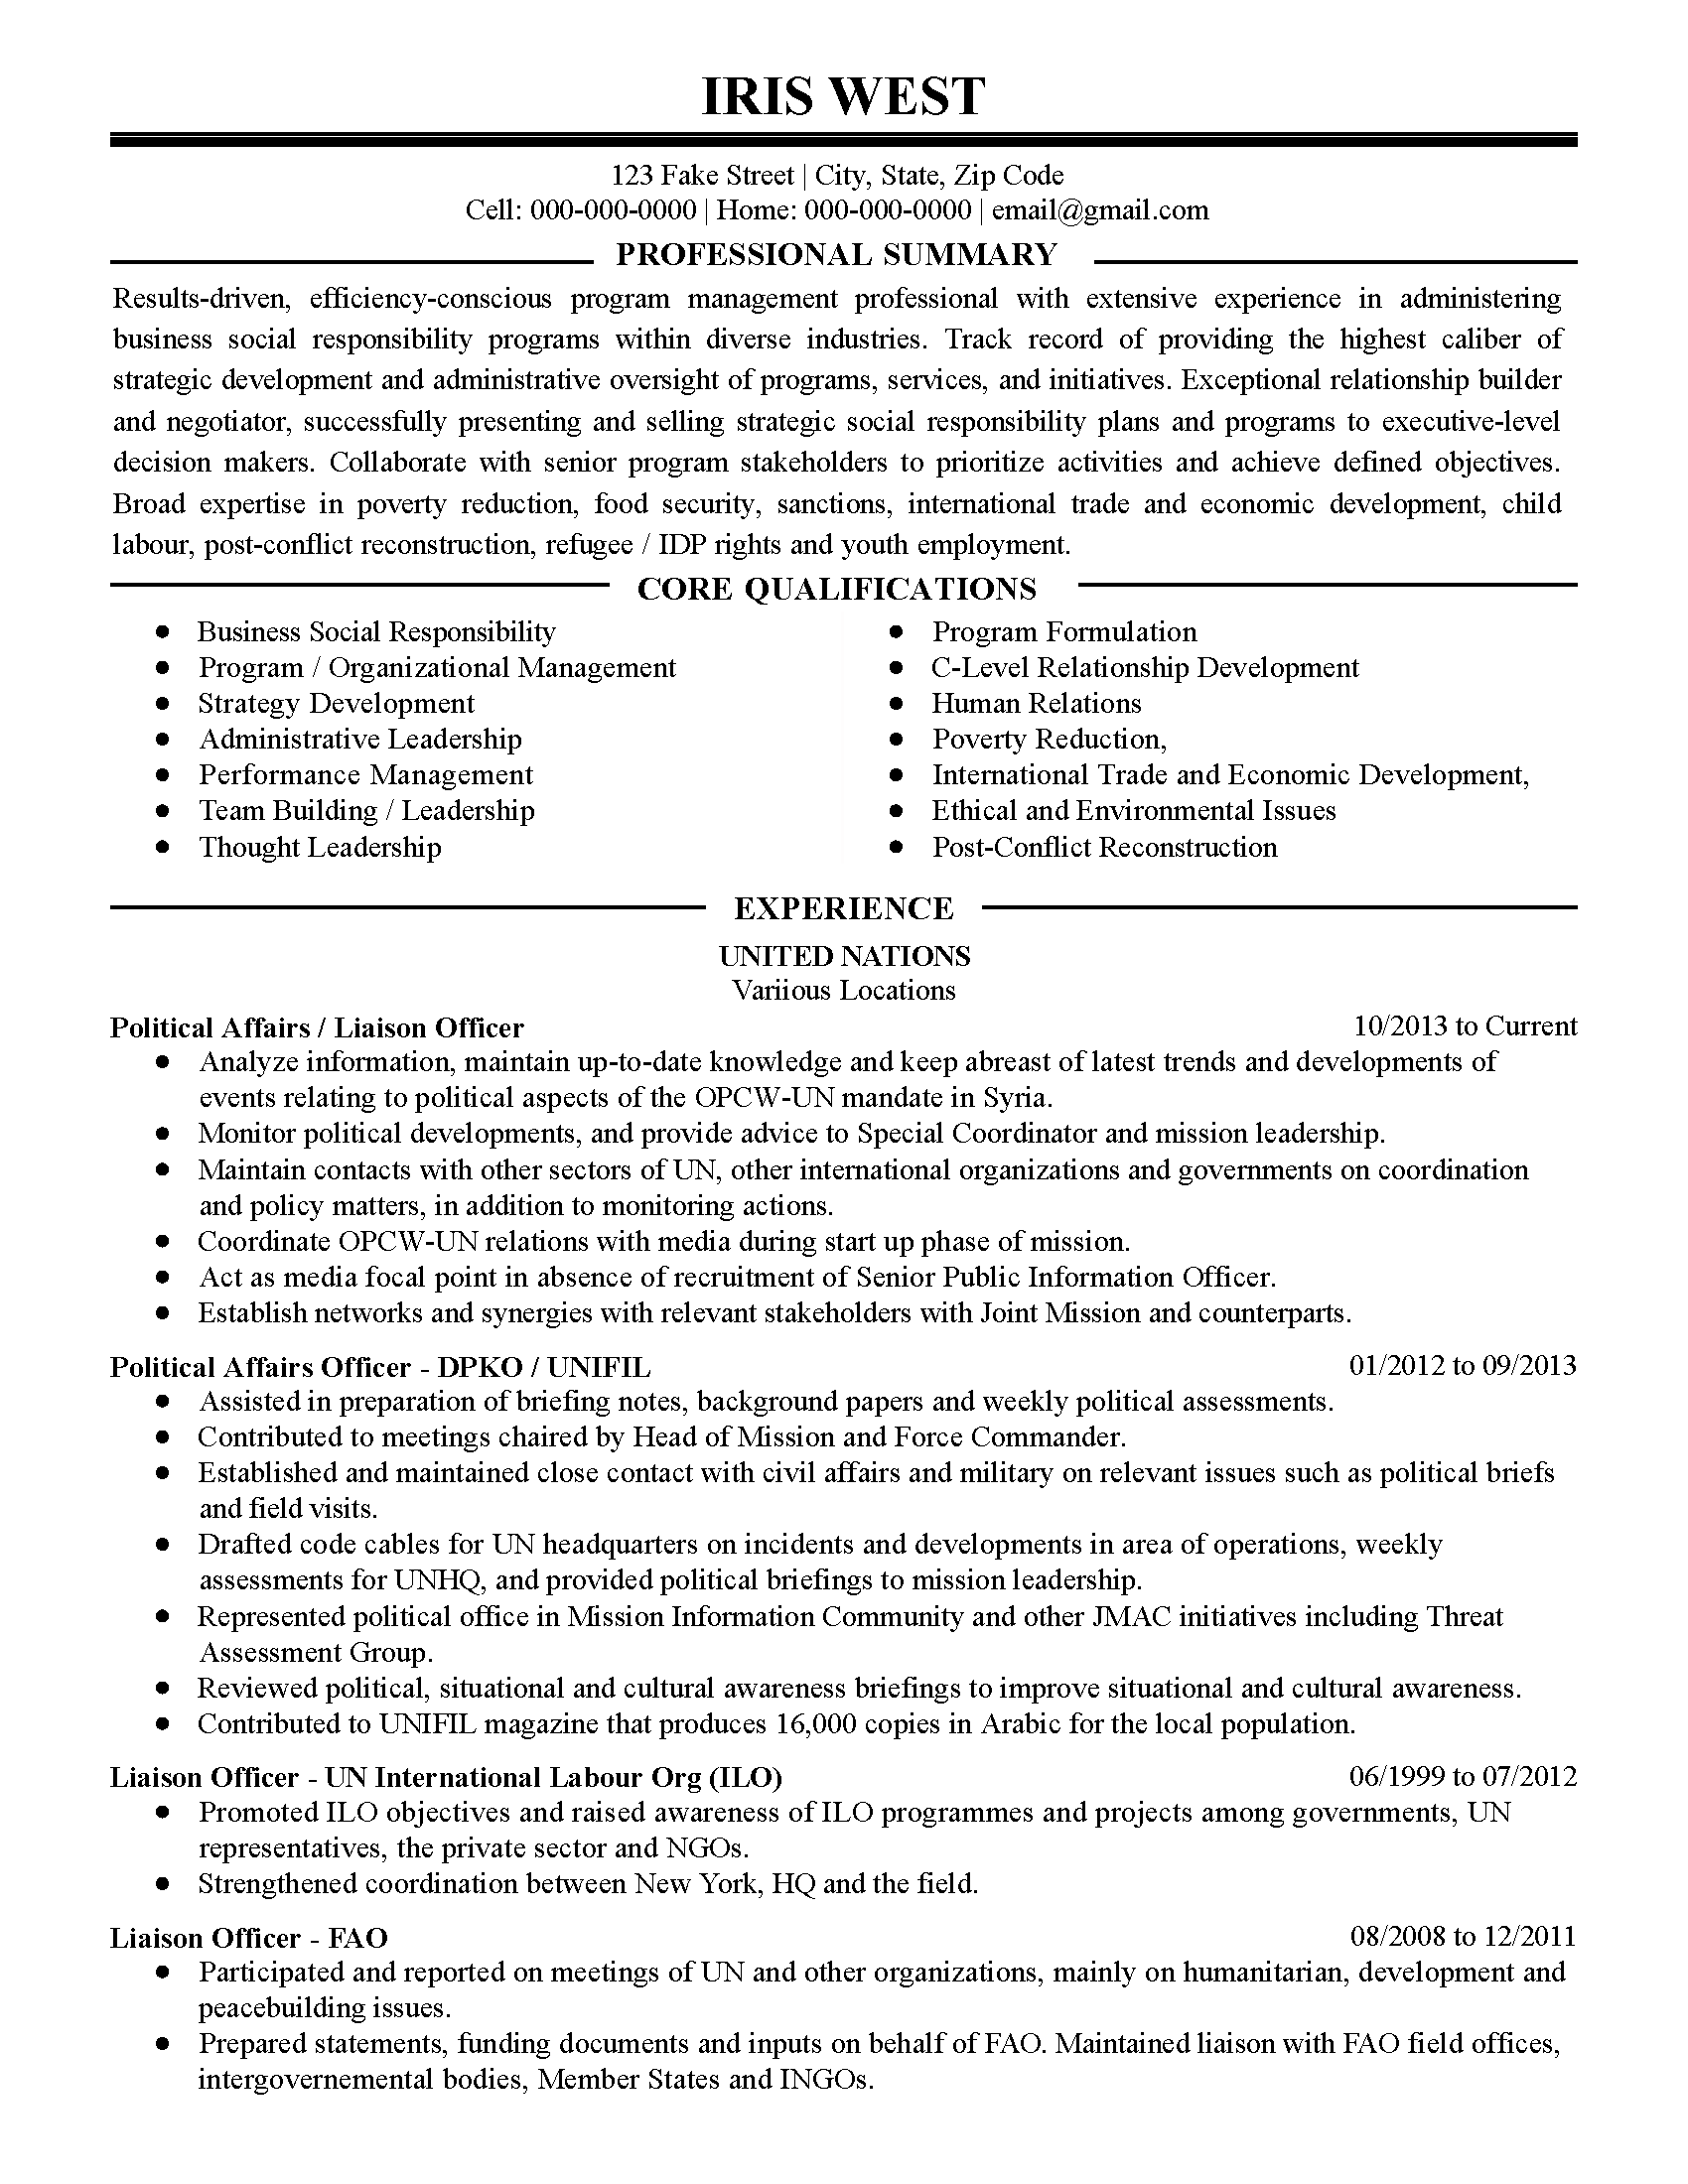 political candidate resume examples